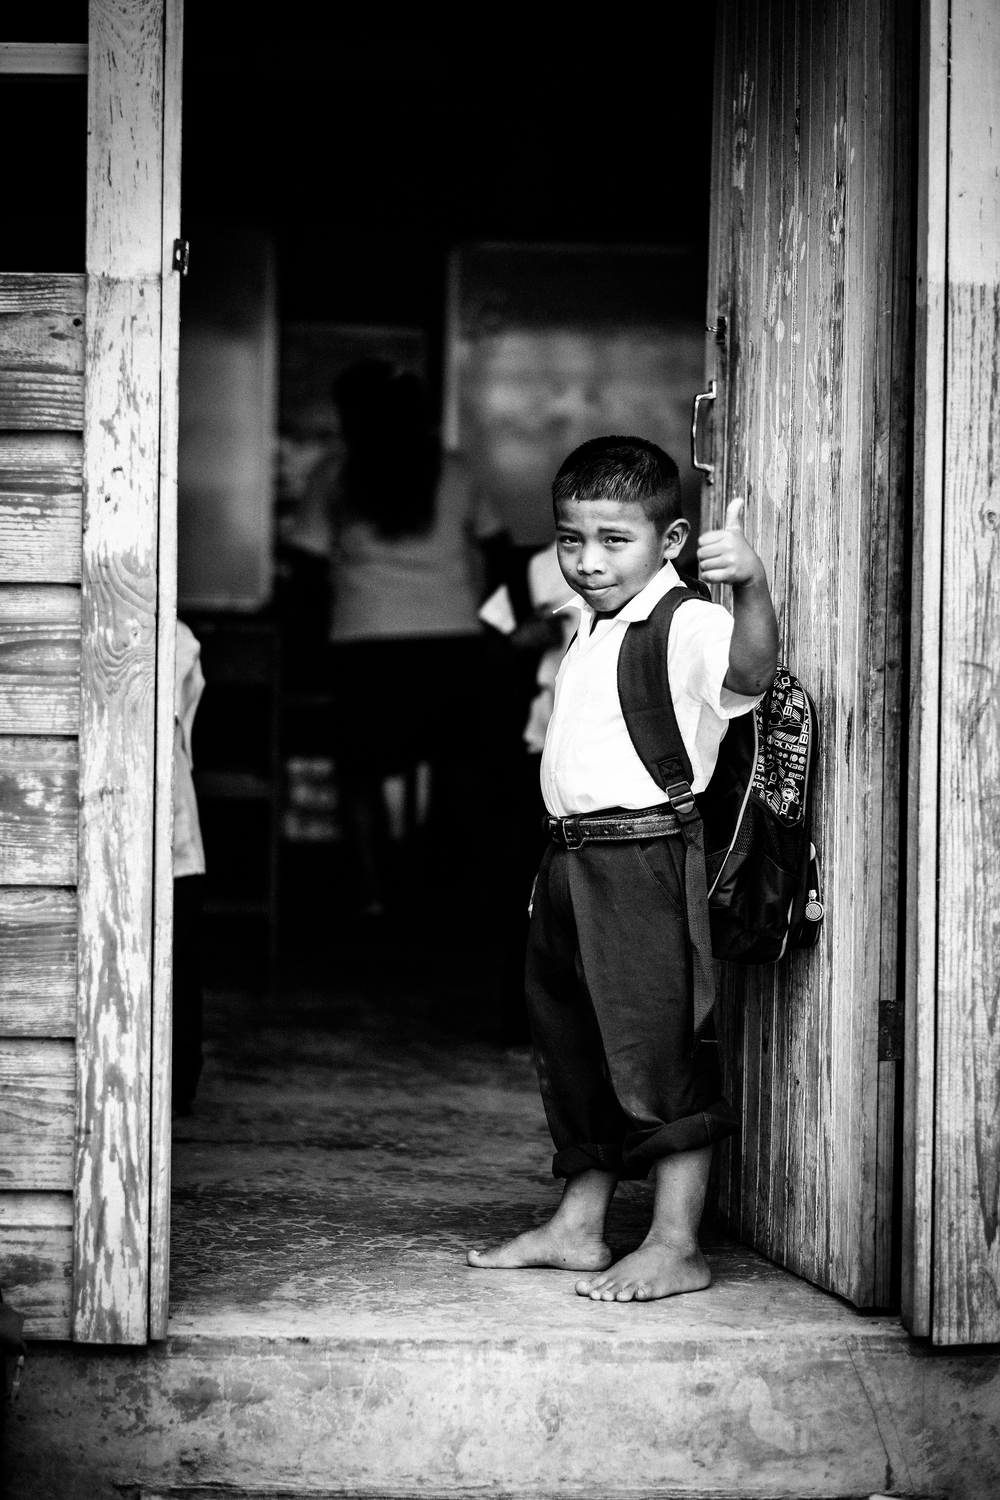 Give & Surf - Nicholas Giombi, Photographers Without Borders